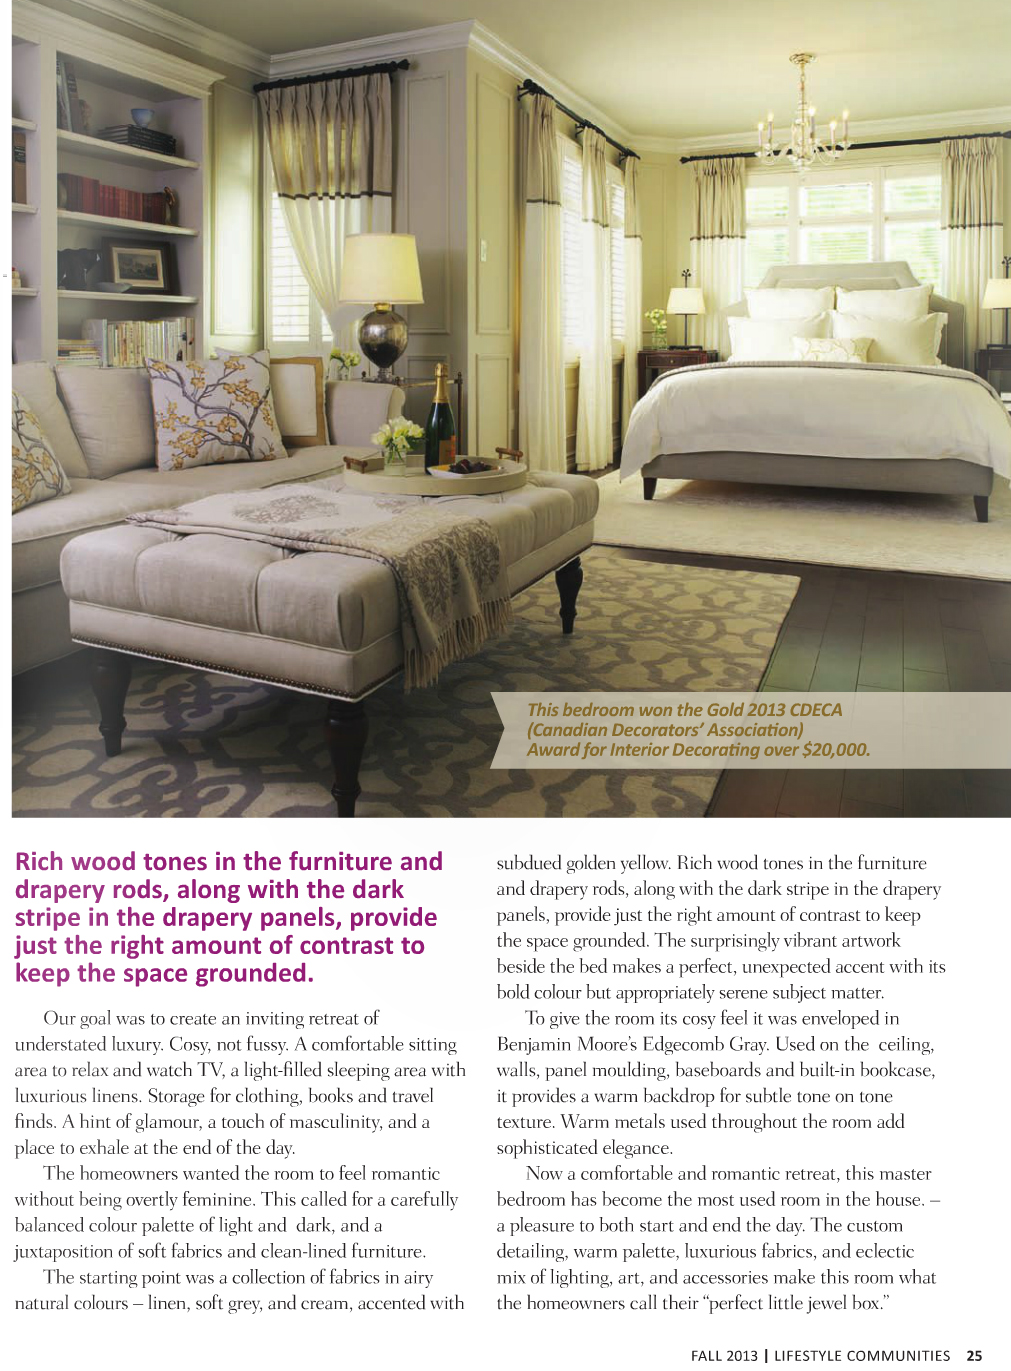 Lifestyle Communities Fall 2013 Page 4.jpg